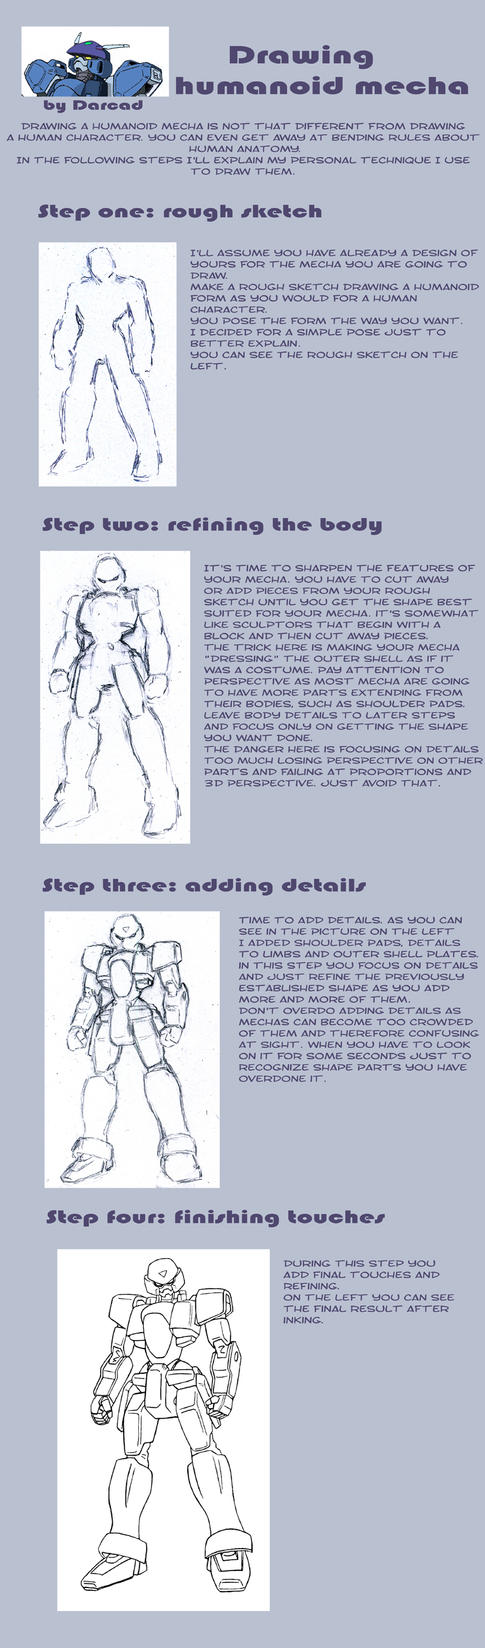 Tutorial: draw humanoid mecha by Darcad